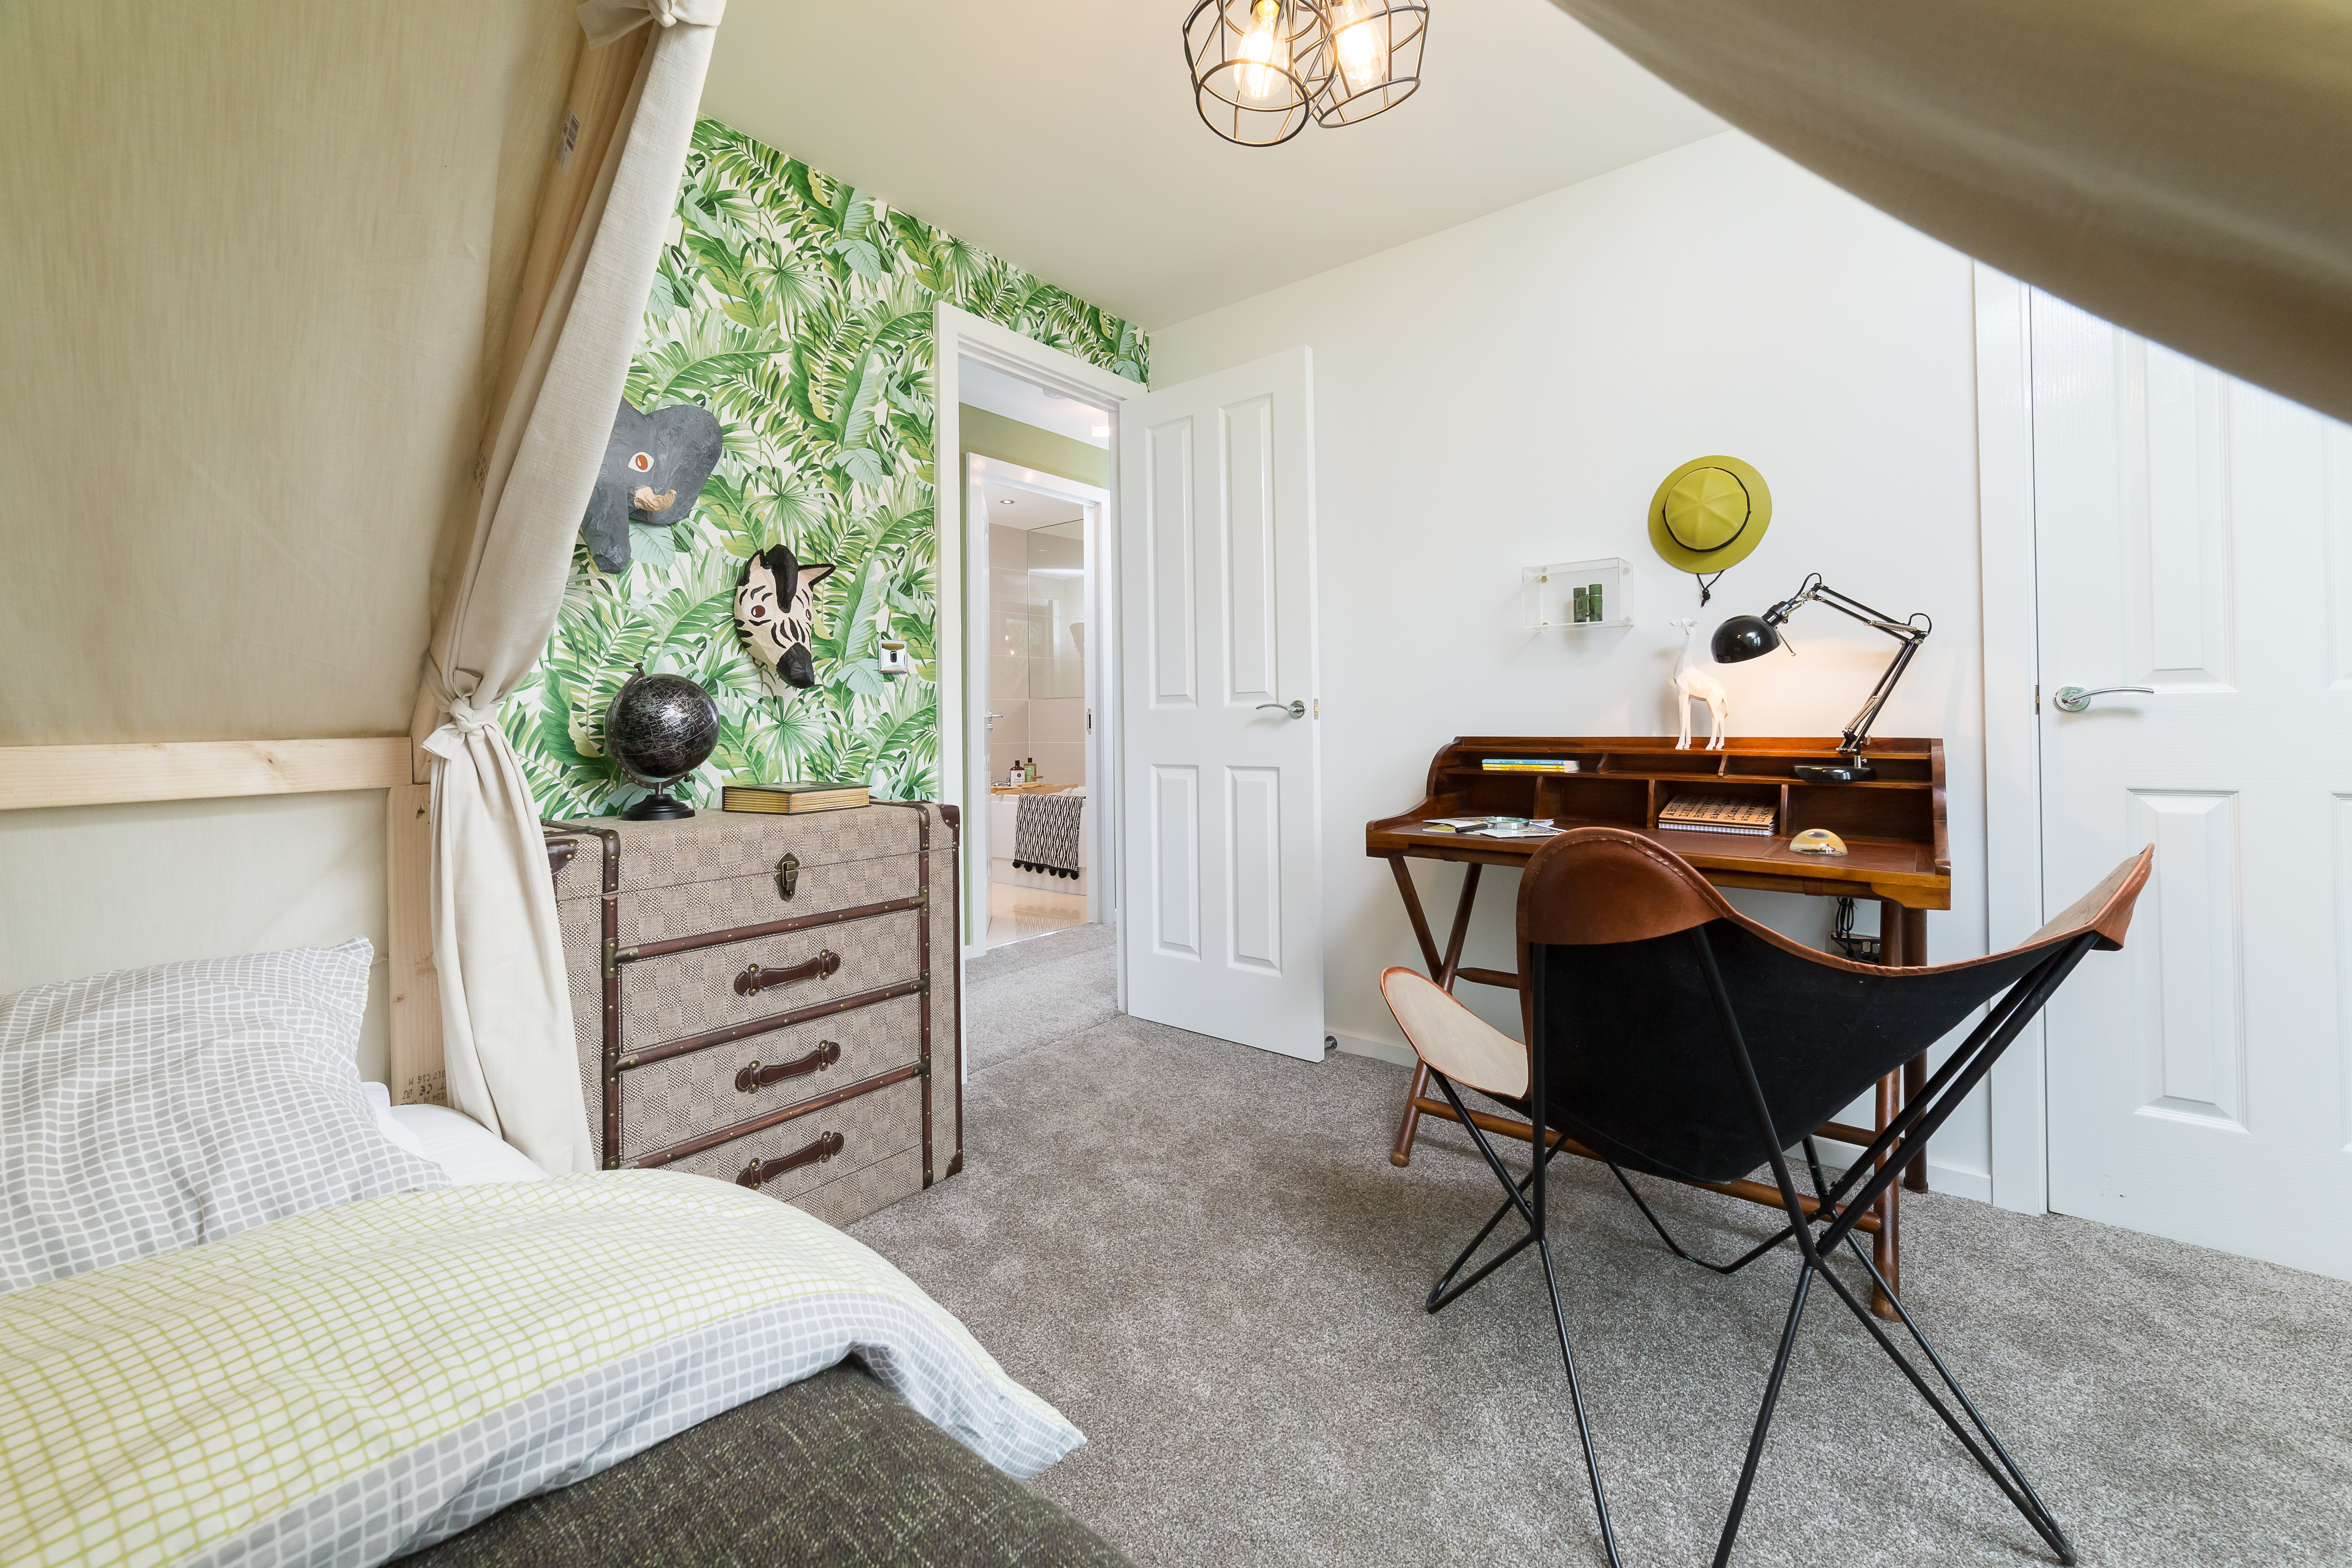 23.05.18.-Orchard-Quarter-Showhome-IMG_1505.jpg